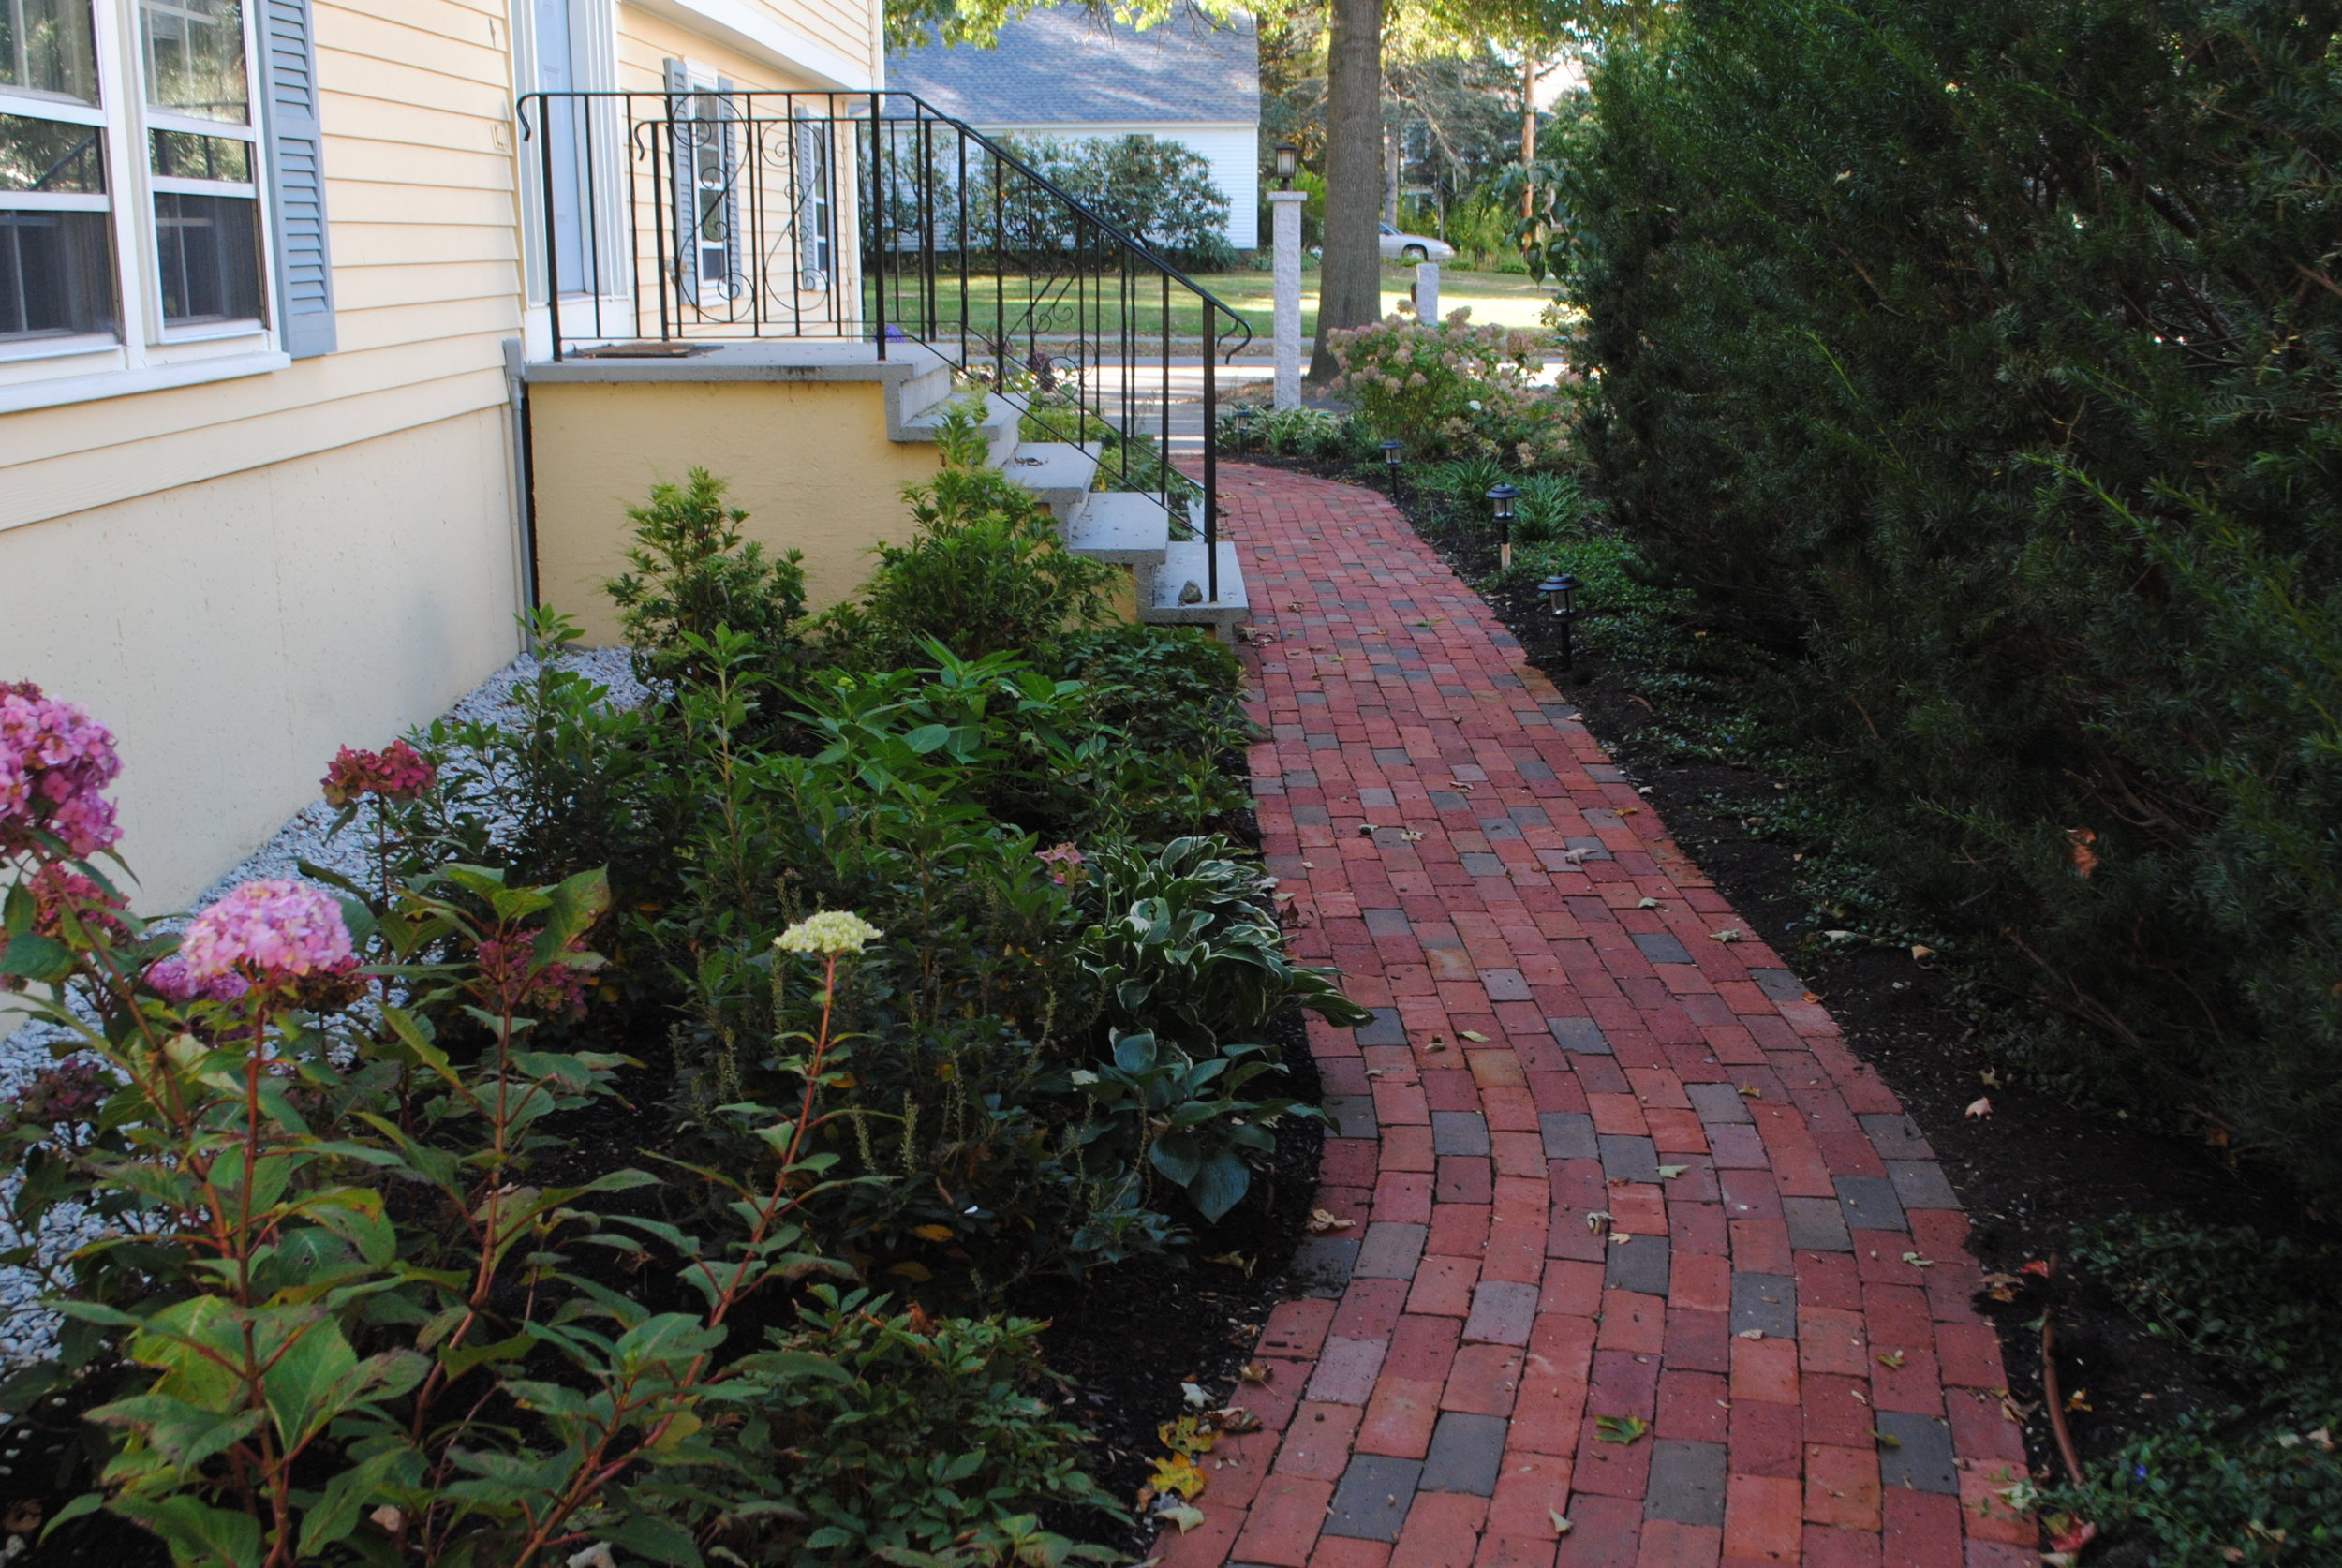 This narrow strip at the side of the house is made inviting with a new brick path and interesting shrubs.